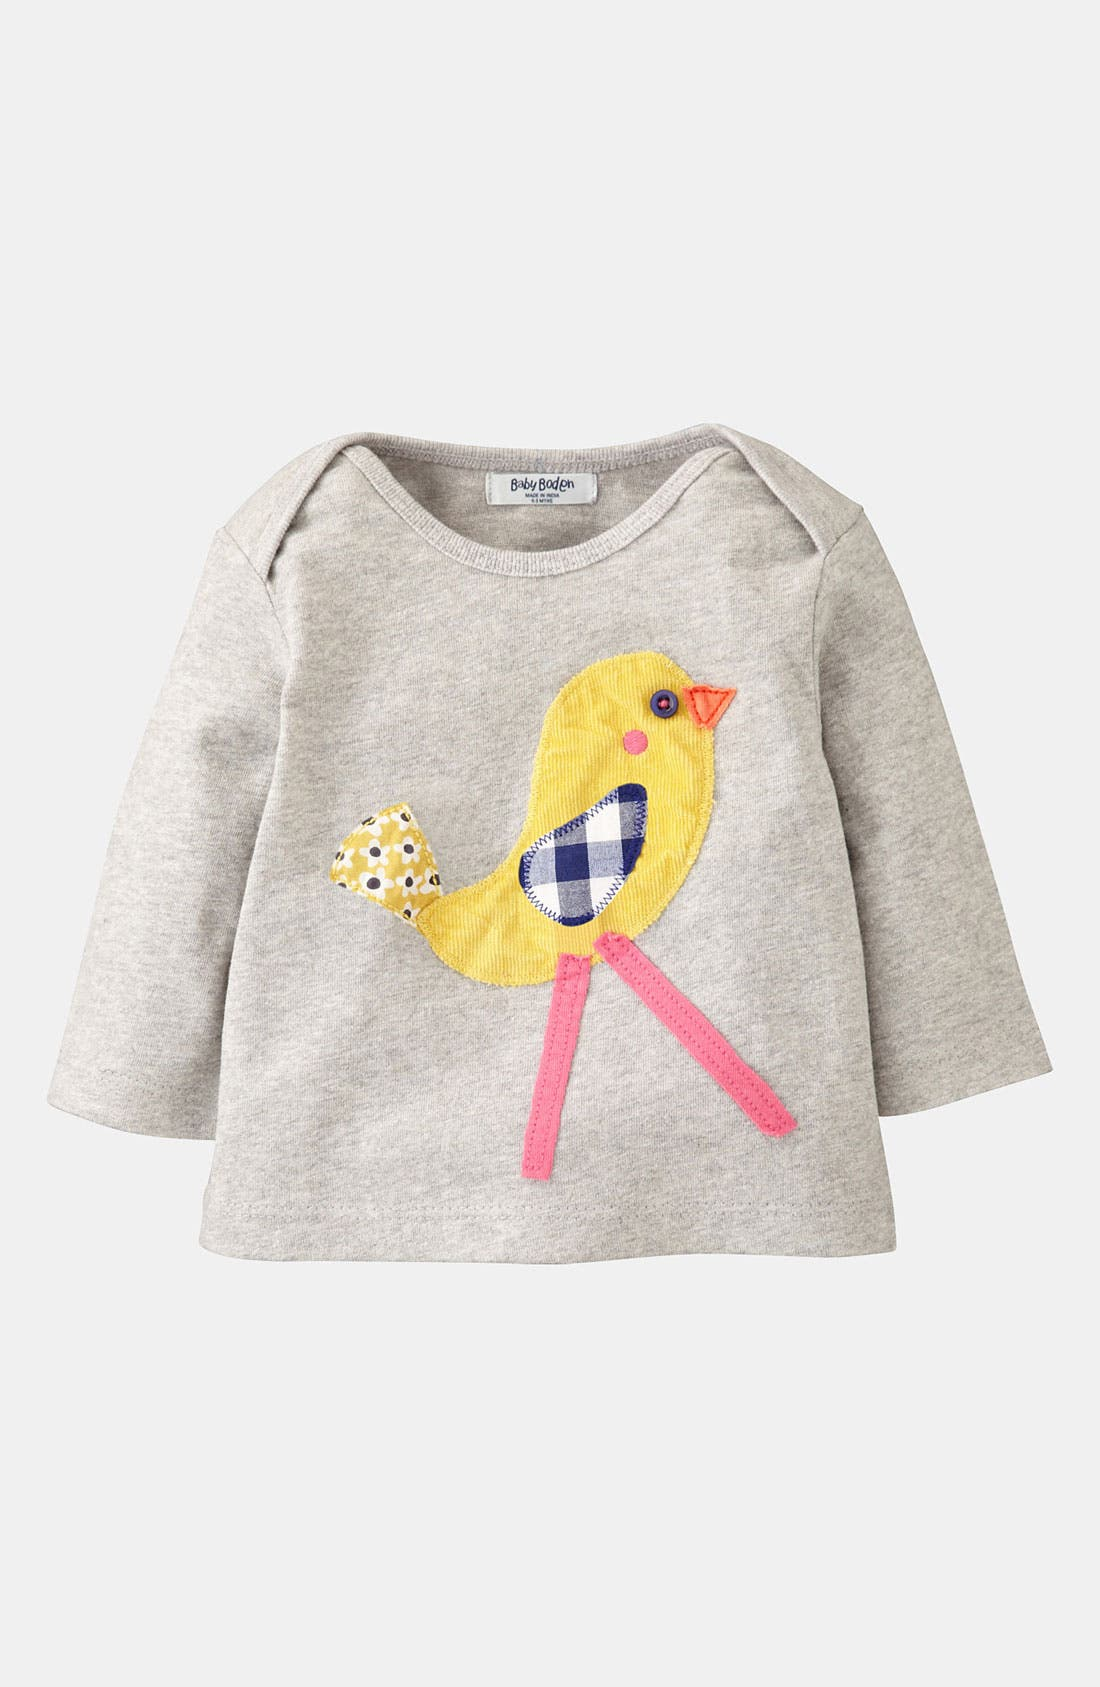 Alternate Image 1 Selected - Mini Boden 'Animal' Appliqué Tee (Infant)